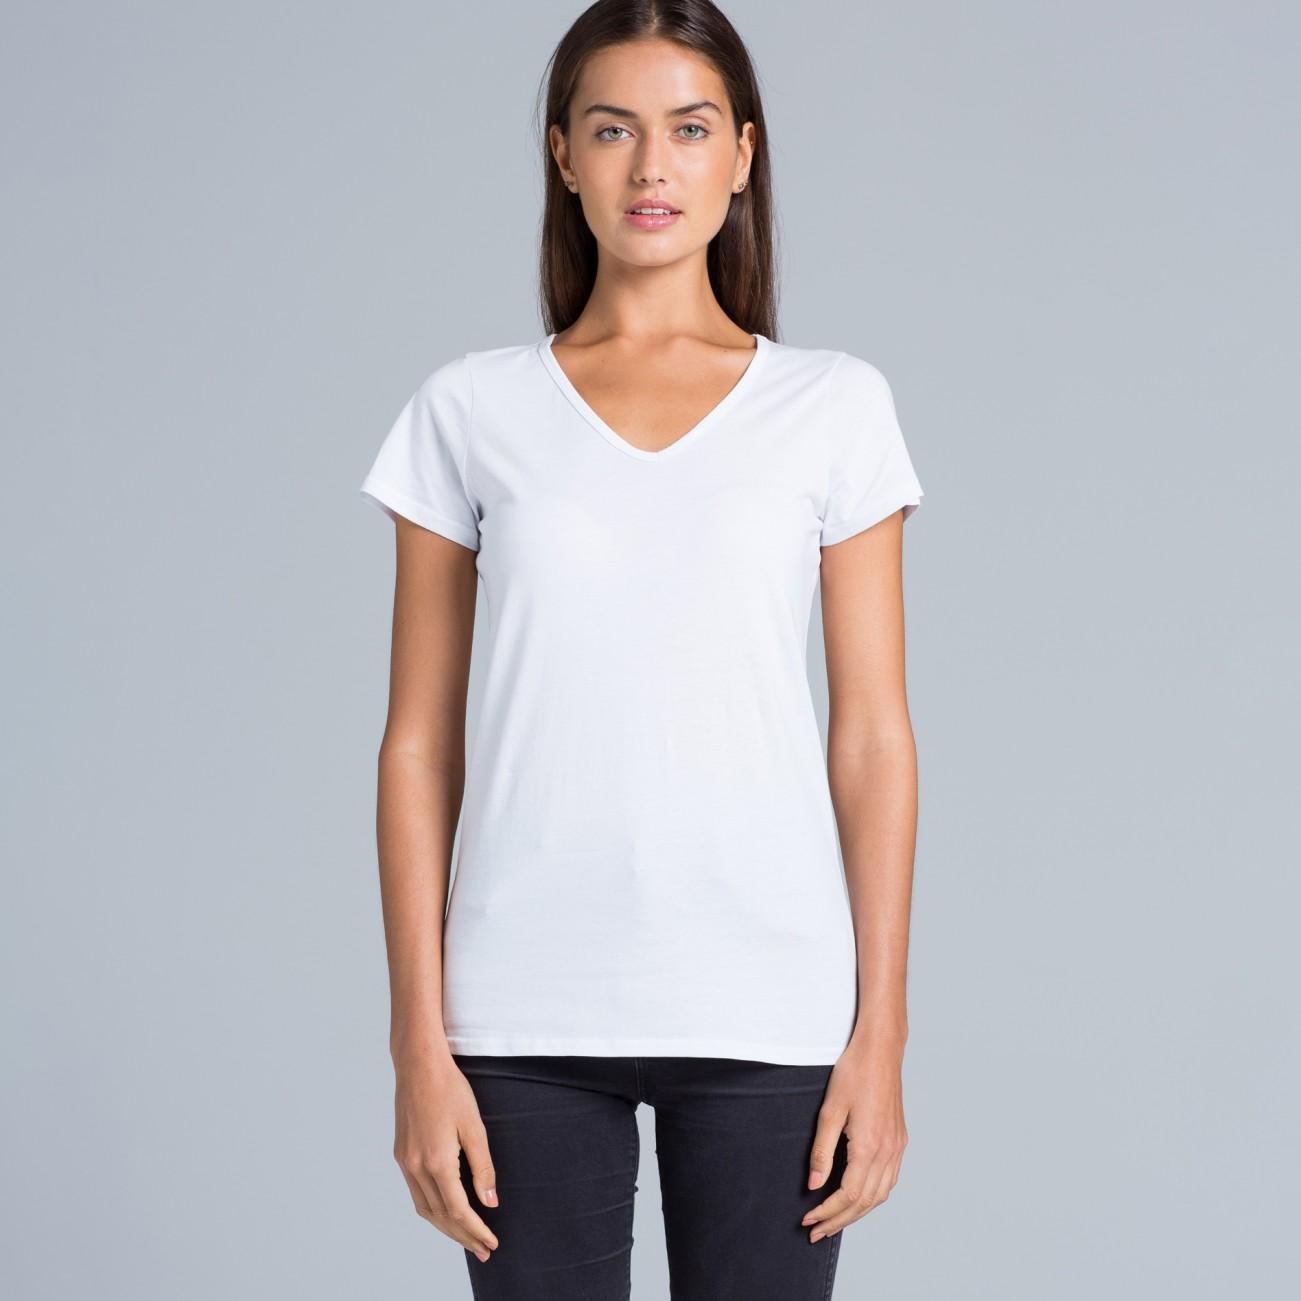 Womens bevel v neck tee cotton blend t shirts the for Womens v neck t shirts